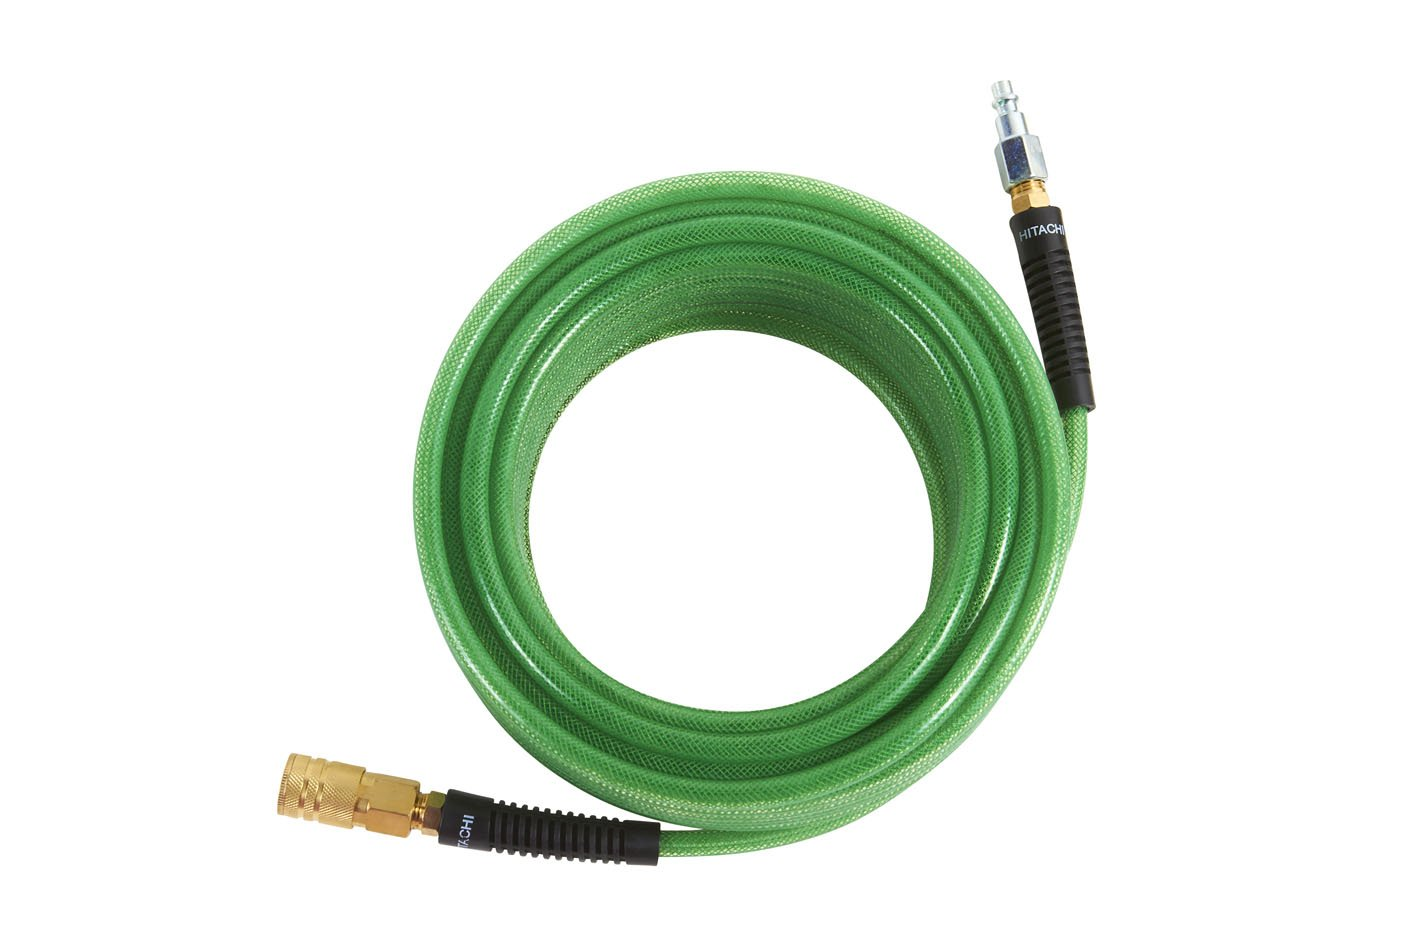 Hitachi 115155 Professional Grade Polyurethane Air Hose with 1/4'' Industrial Fittings, 1/4'' x 50', Green